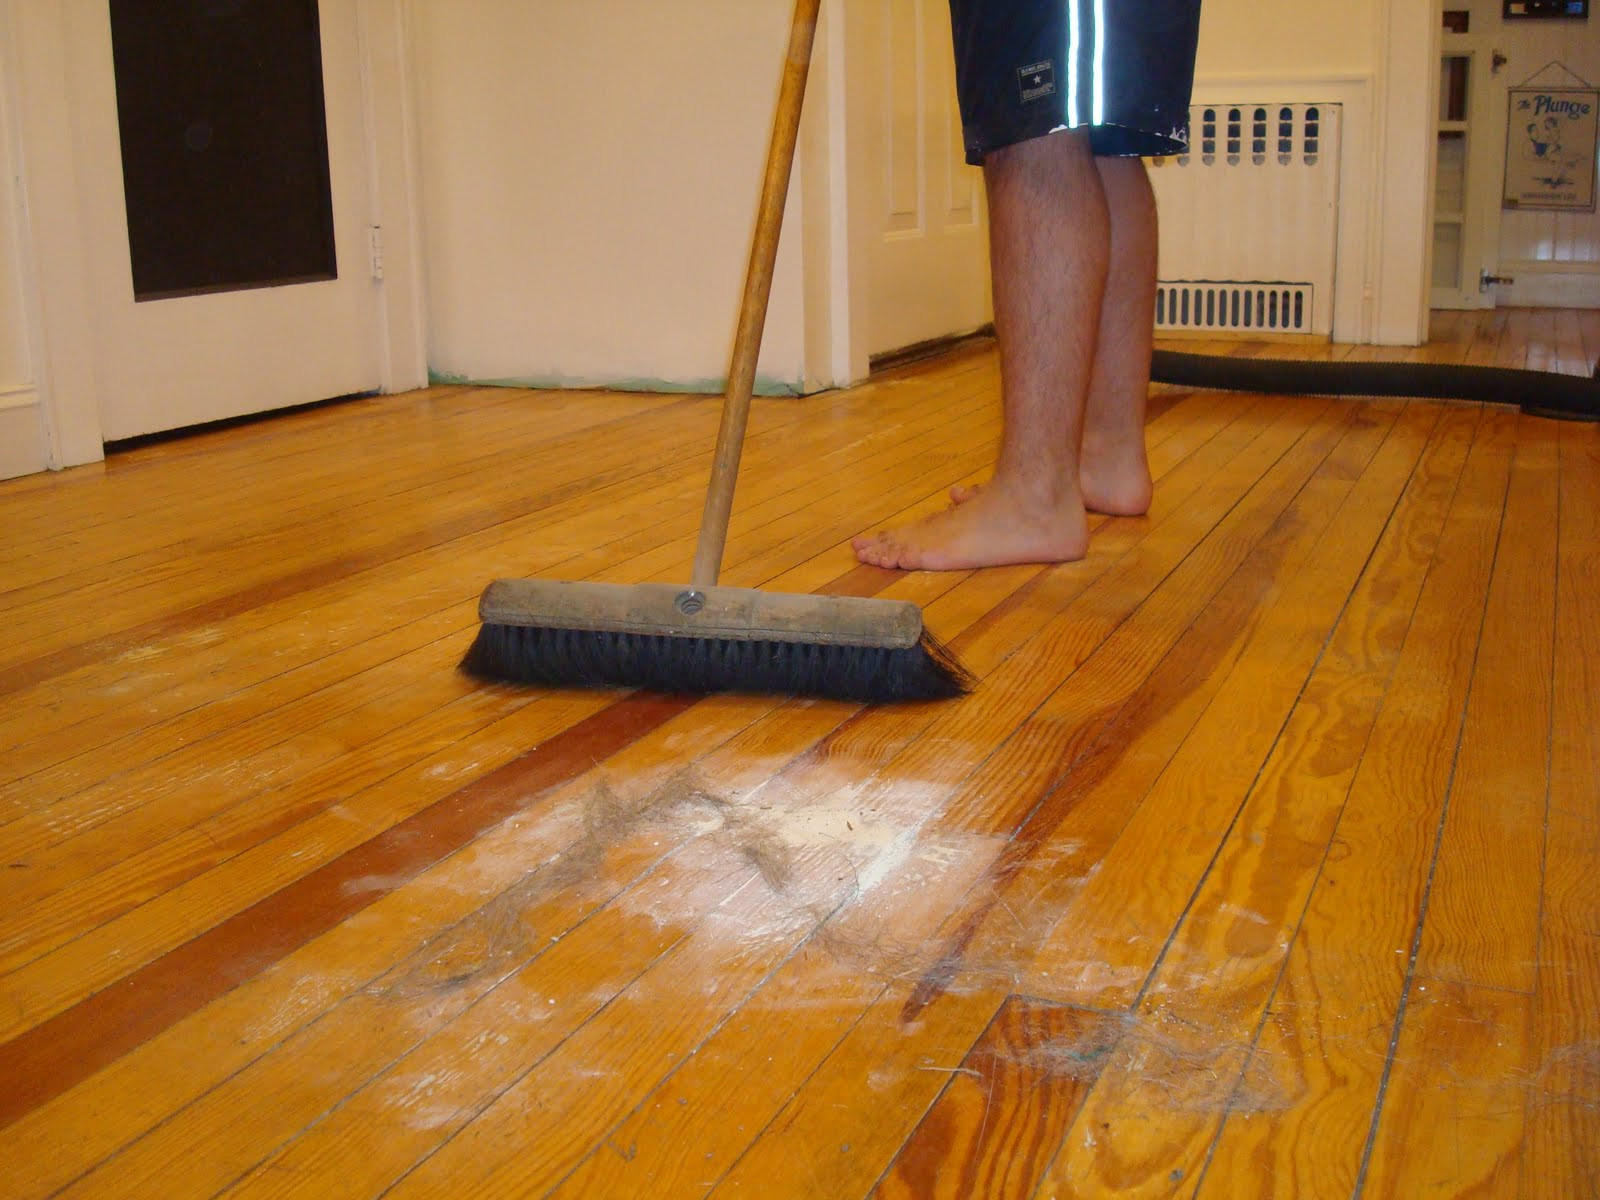 cleaning old hardwood floors with vinegar of cleaning hardwood floors with vinegar hardwood floor cleaning how do throughout cleaning hardwood floors with vinegar hardwood floor cleaning how do you clean hardwood floors cleaning